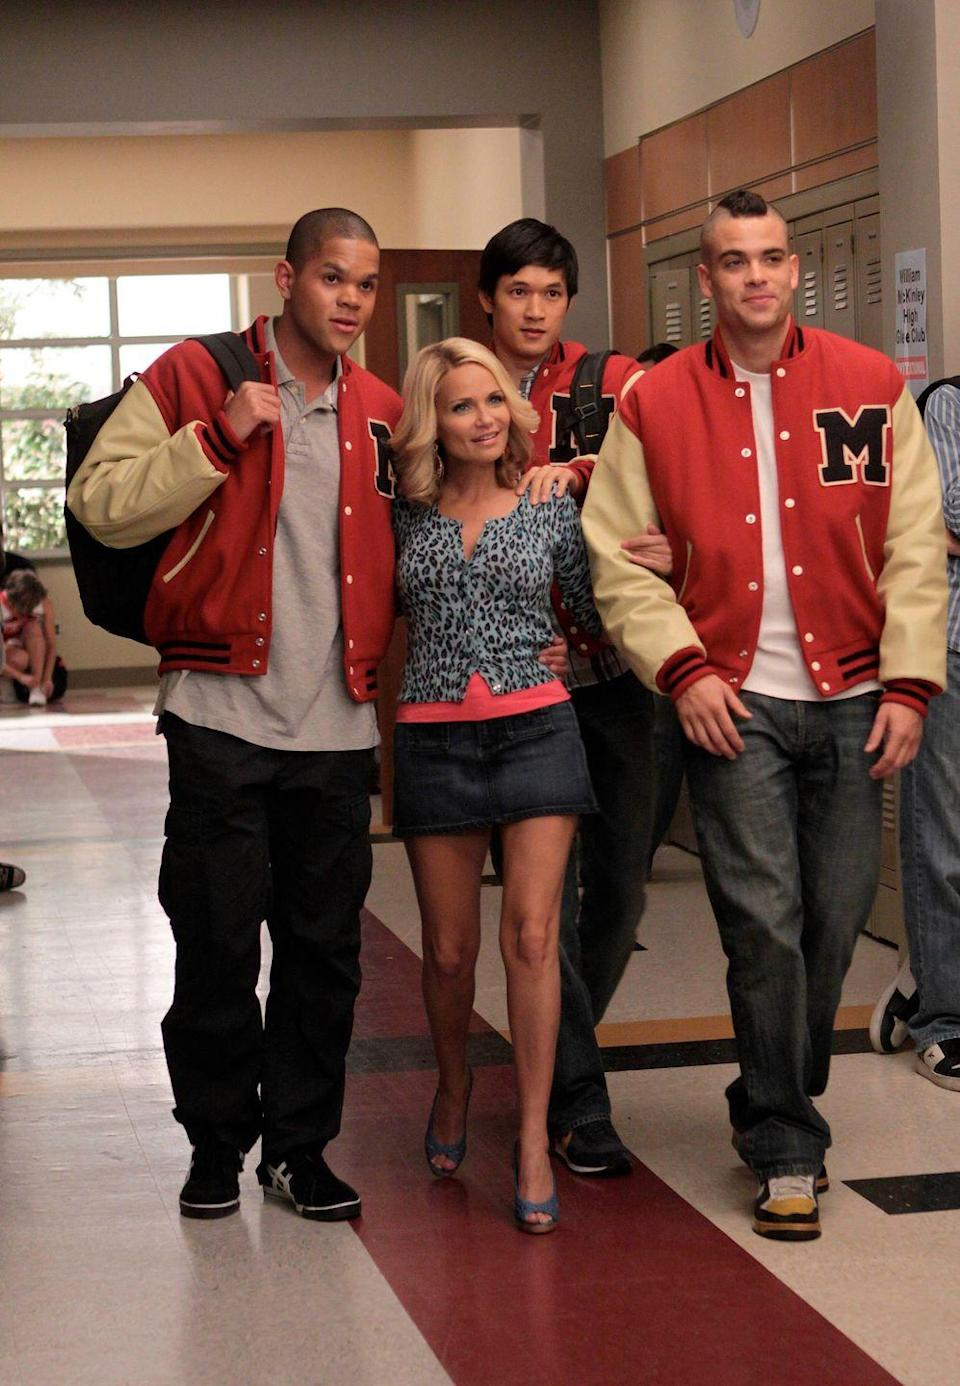 "<p>Did you forget about when Kristin Chenoweth starred as April Rhodes, the former crush of Mr. Schue who spends most of her time not sober and potentially hooked up with three members of the Glee club? Yeah, us either. </p><p>""'Glee' remains so close to my heart, and if I never get to play her again, she was probably the most fun I've ever had,"" Kristin told <a href=""https://tasteofcountry.com/kristin-chenoweth-country-album-glee-interview-2011/"" rel=""nofollow noopener"" target=""_blank"" data-ylk=""slk:Taste of Country"" class=""link rapid-noclick-resp"">Taste of Country</a> of her role on the show. ""Hopefully April never goes to rehab and she's always, you know, drinking Franzia.""<br></p>"